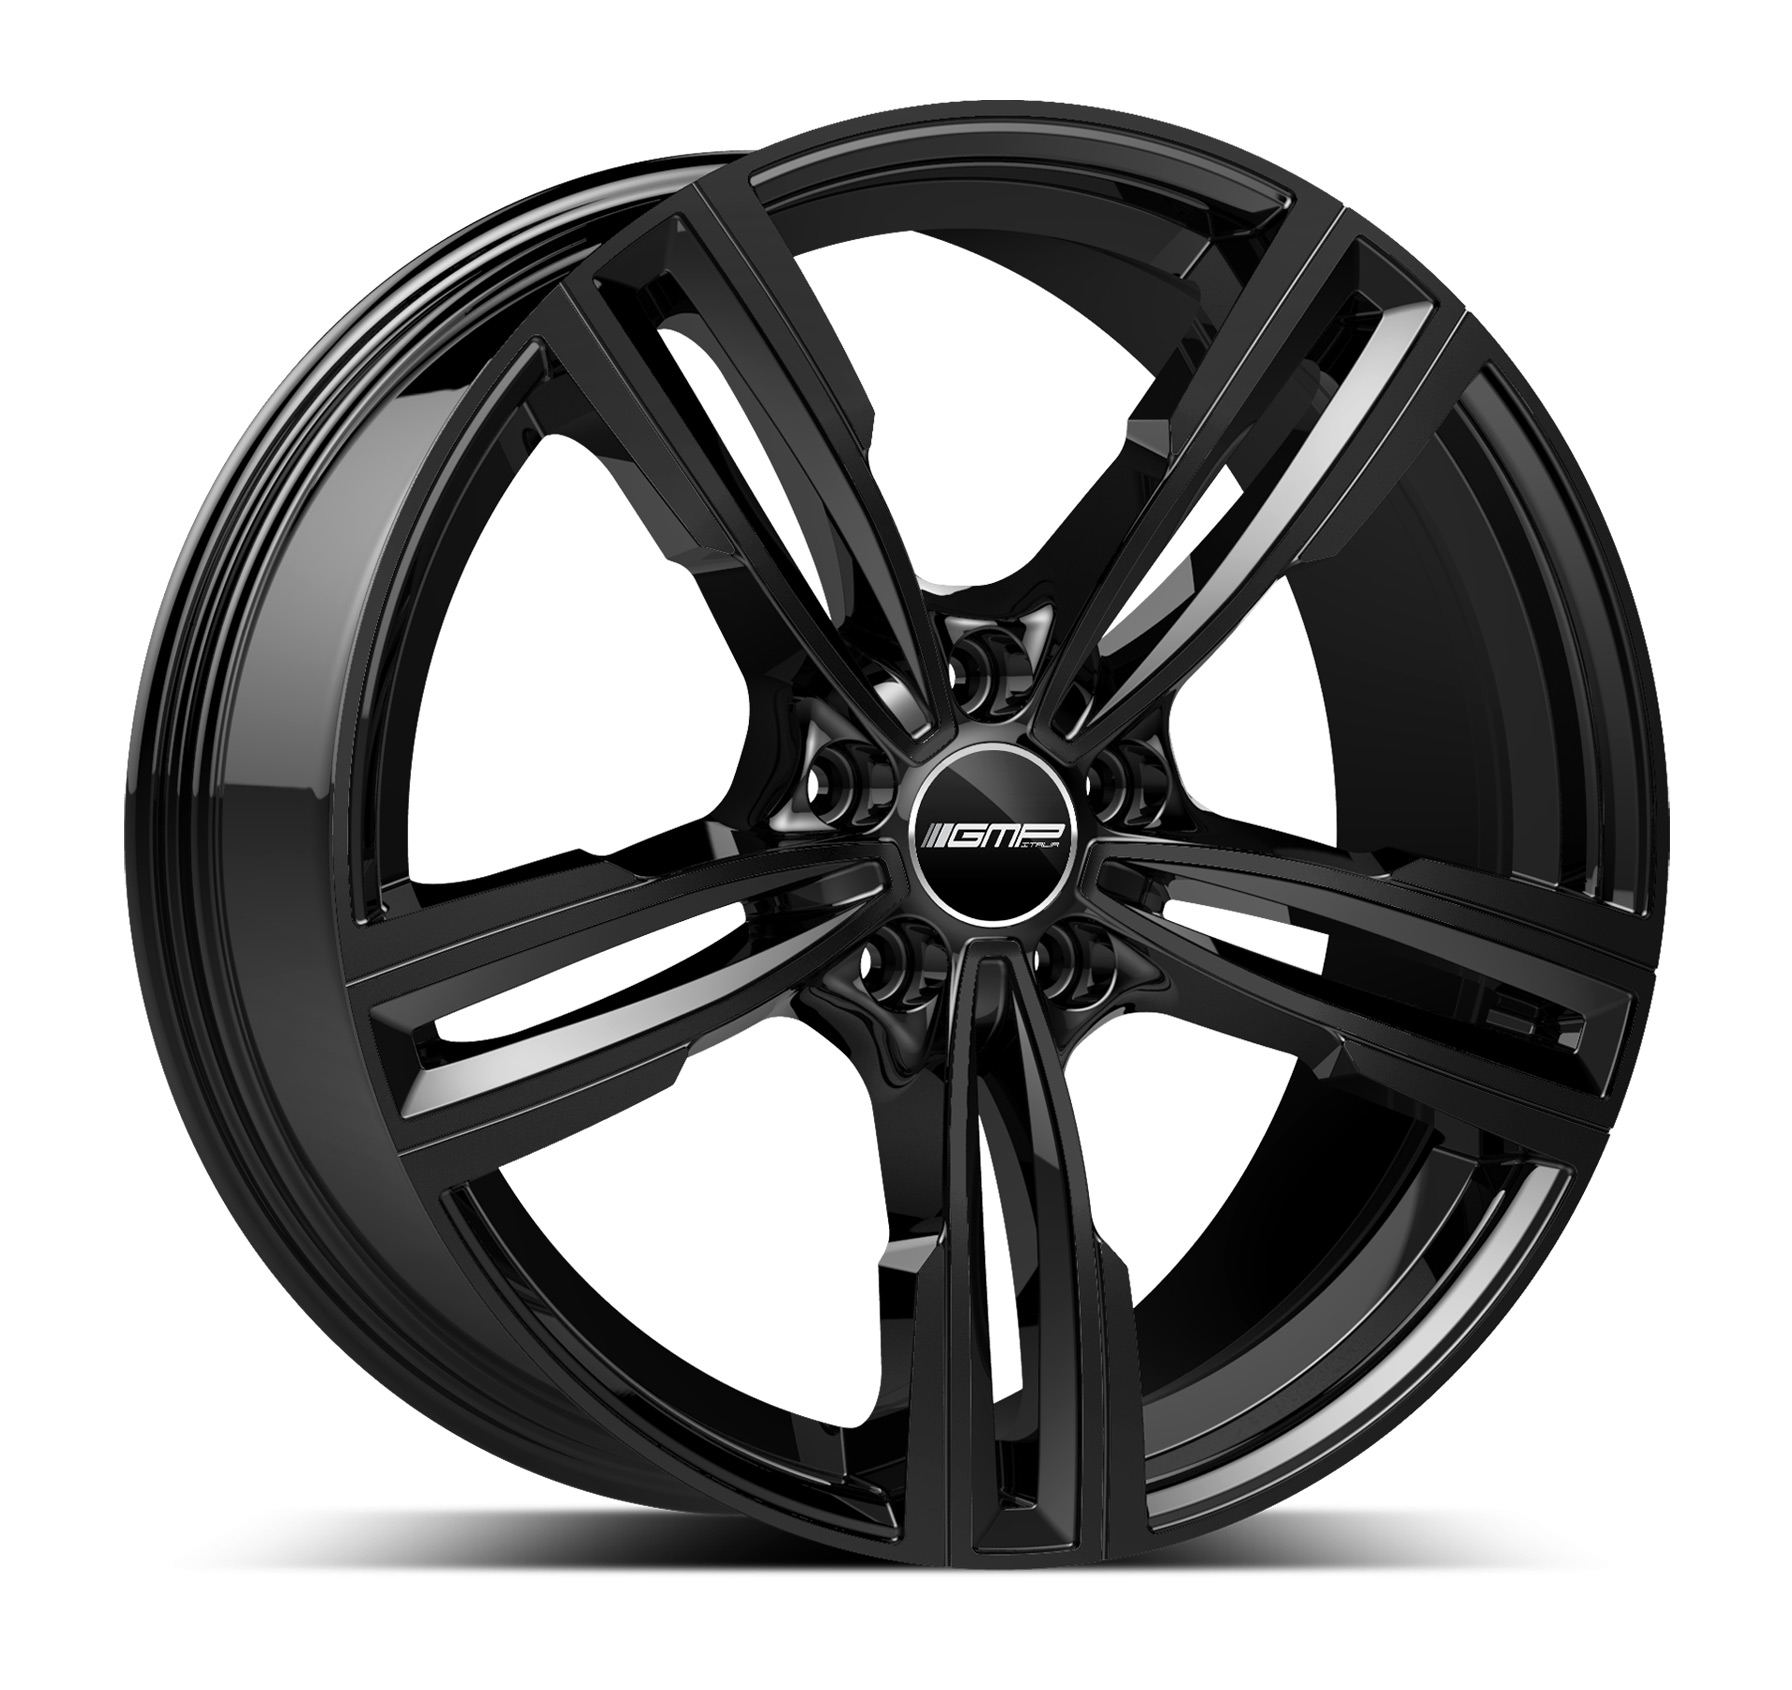 Global Gmp Nedia Group: Reven - Alloy Wheel Collection